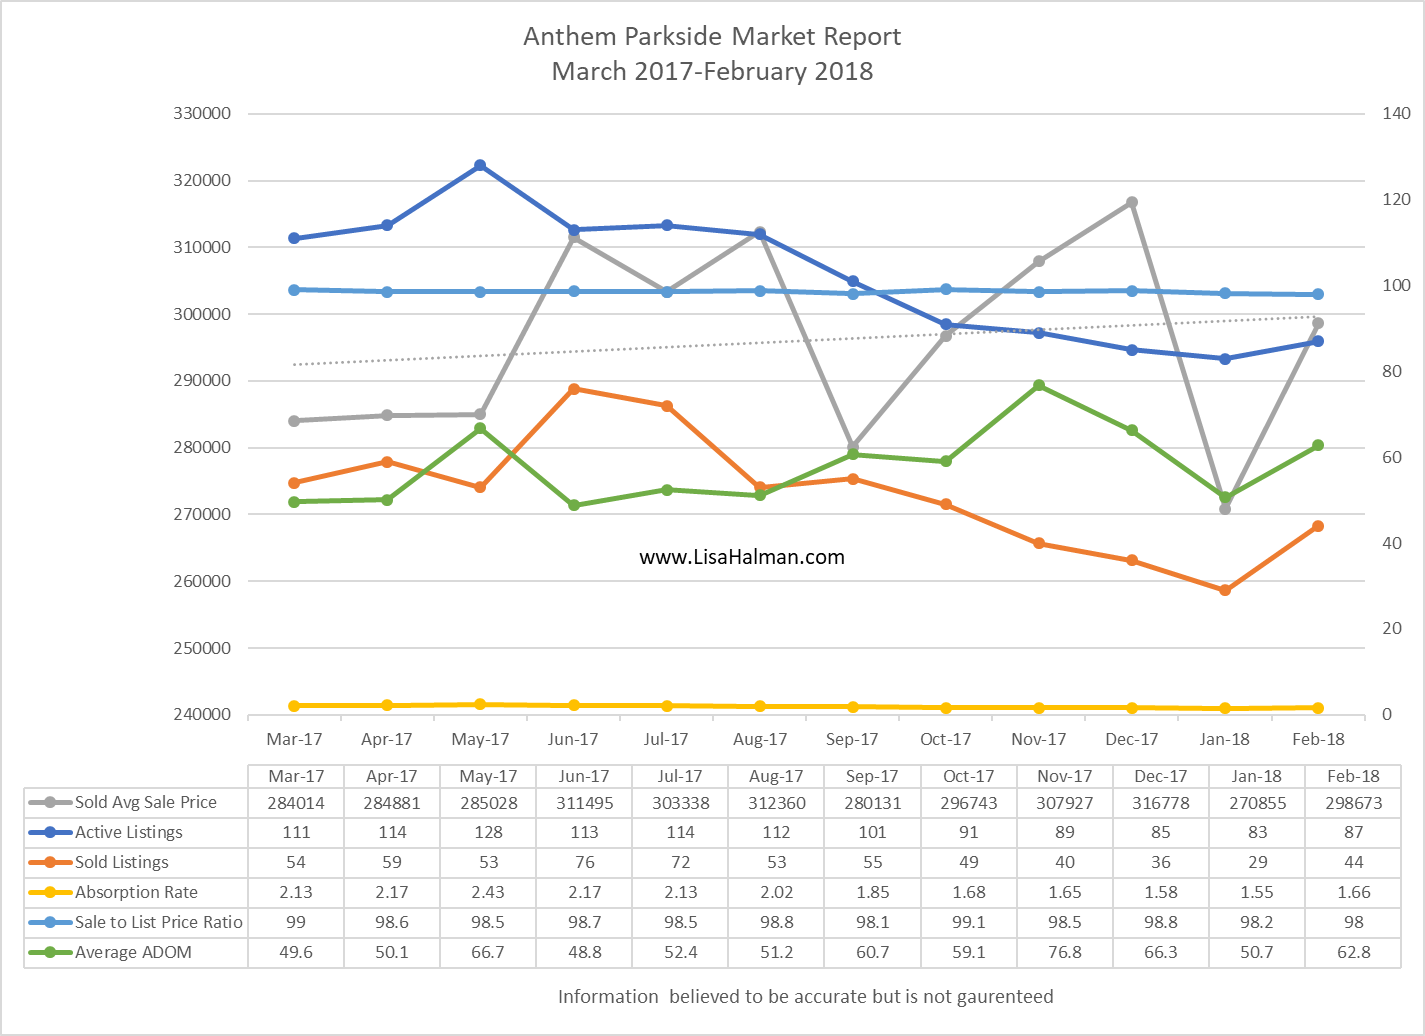 Anthem Parkside Market Update February 2018